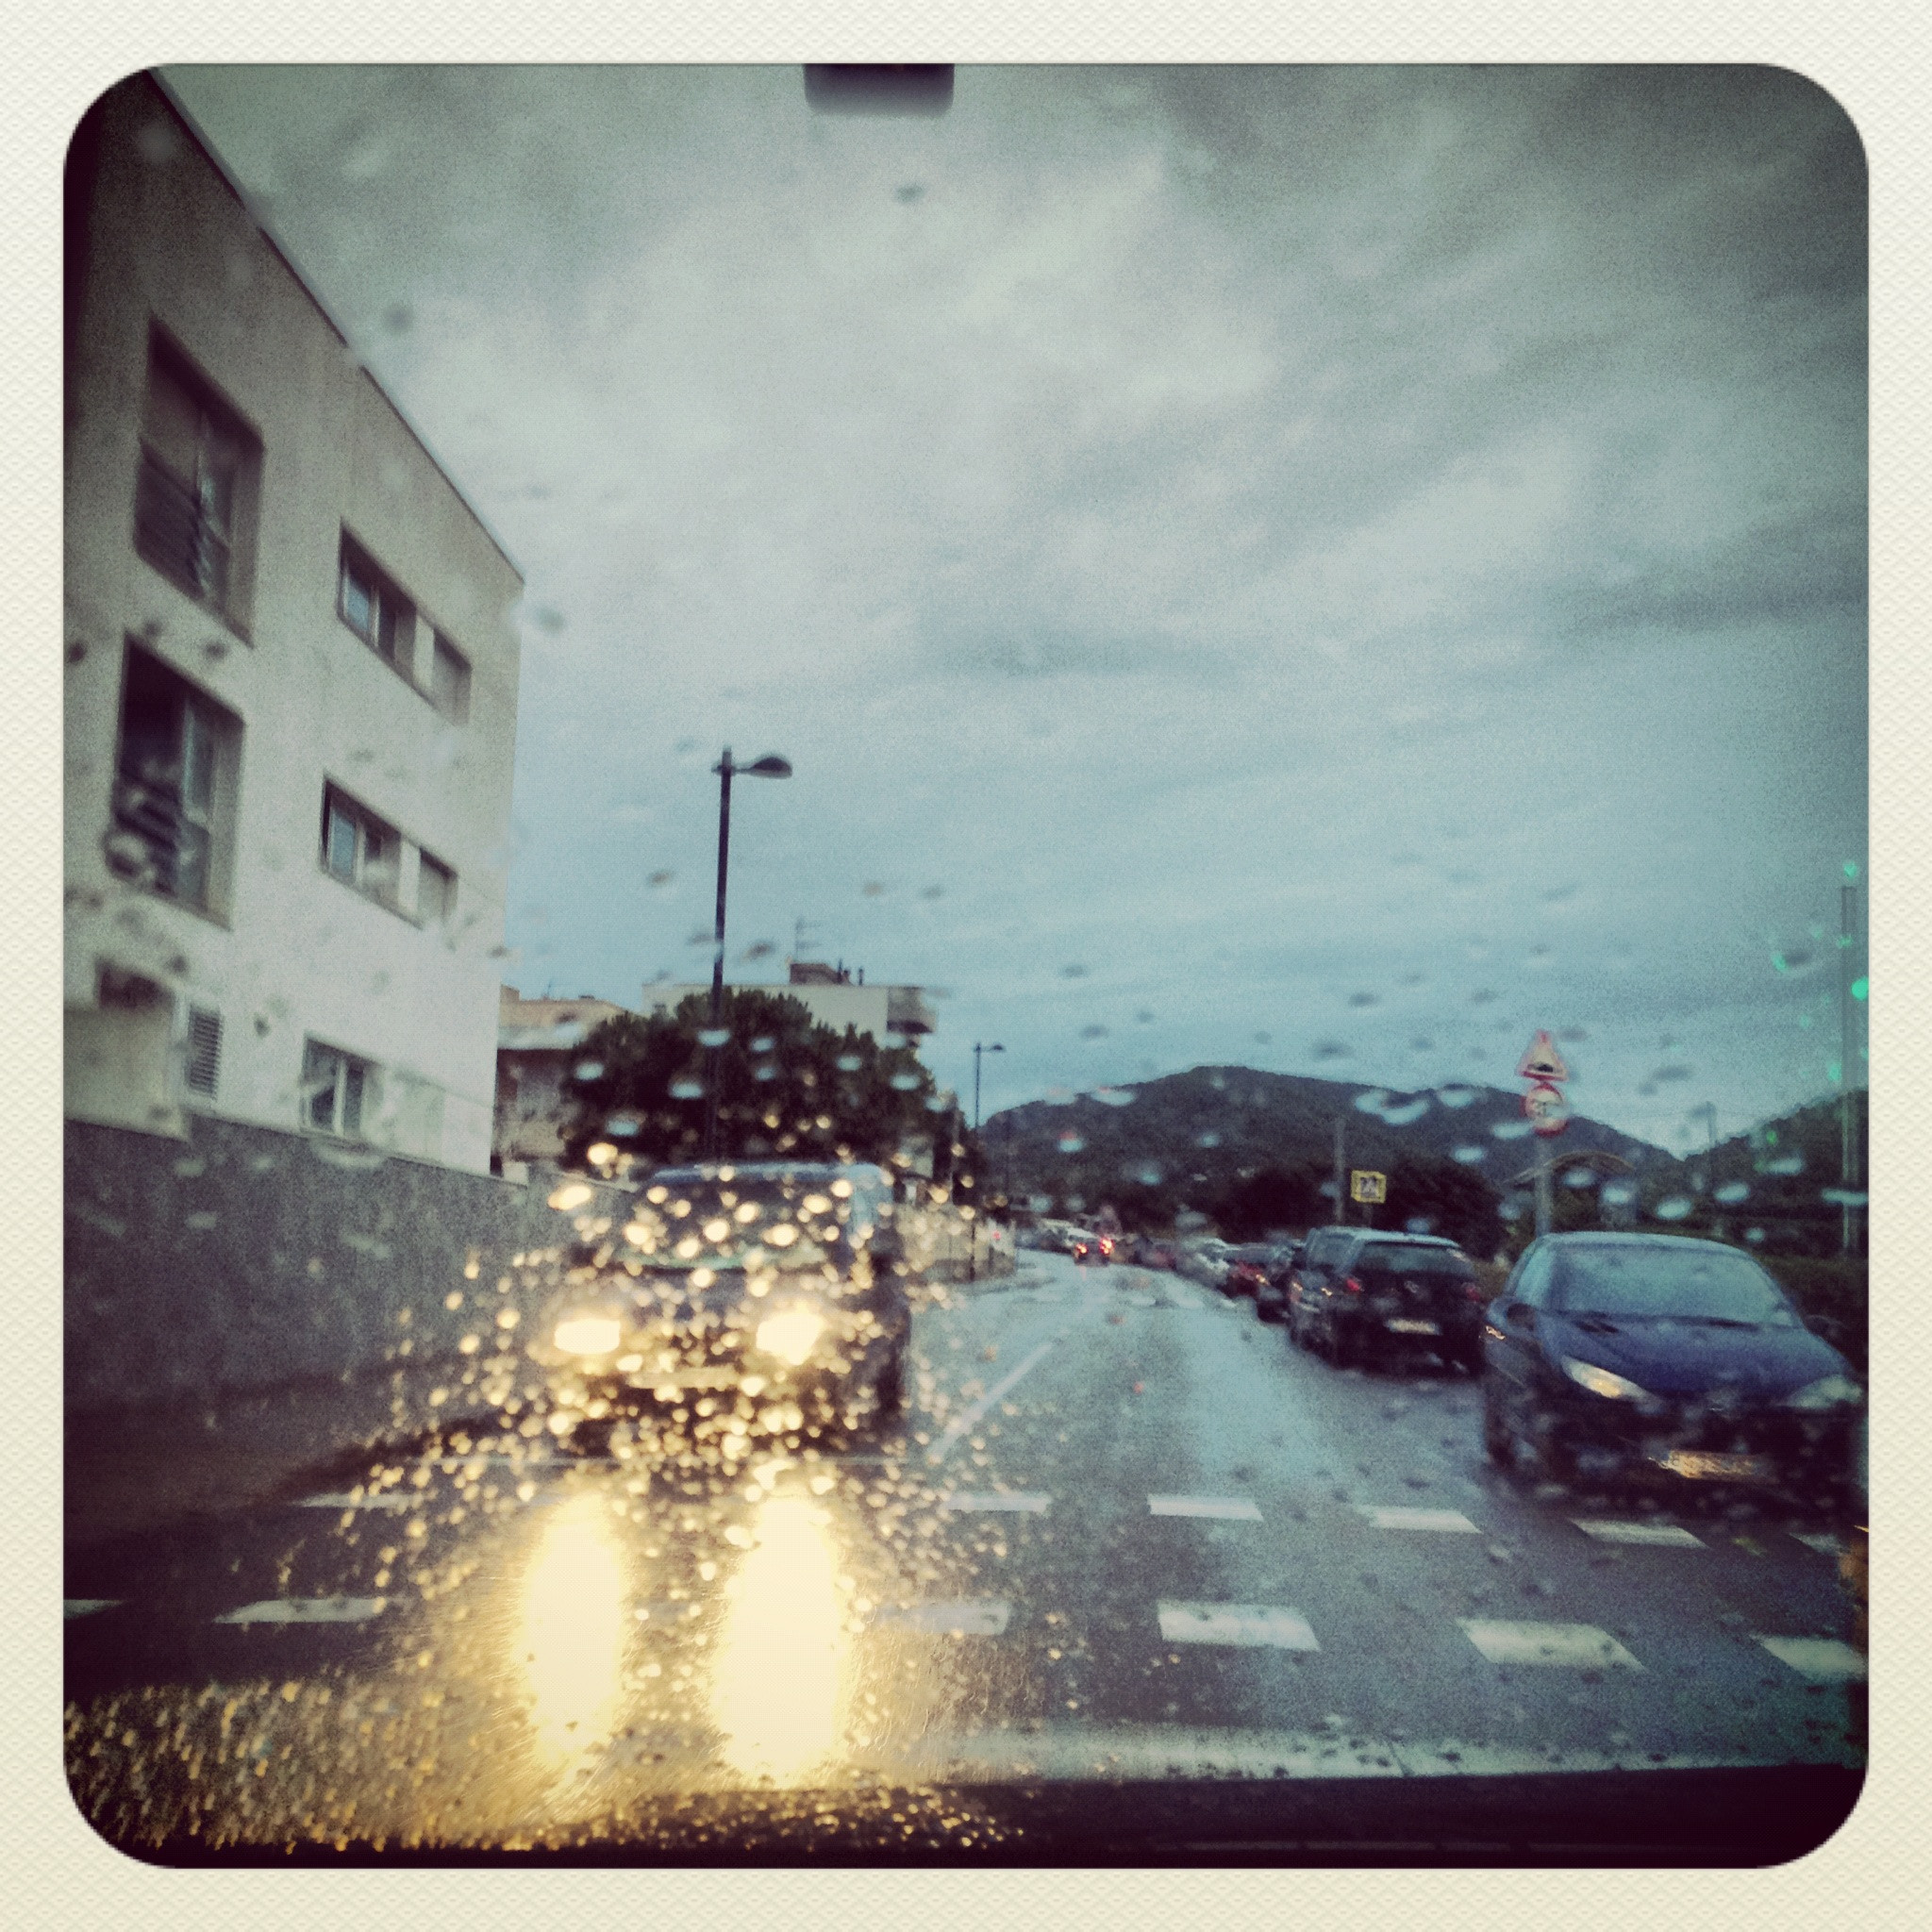 Photograph Summer rain by Ibiza Movilgraphy on 500px